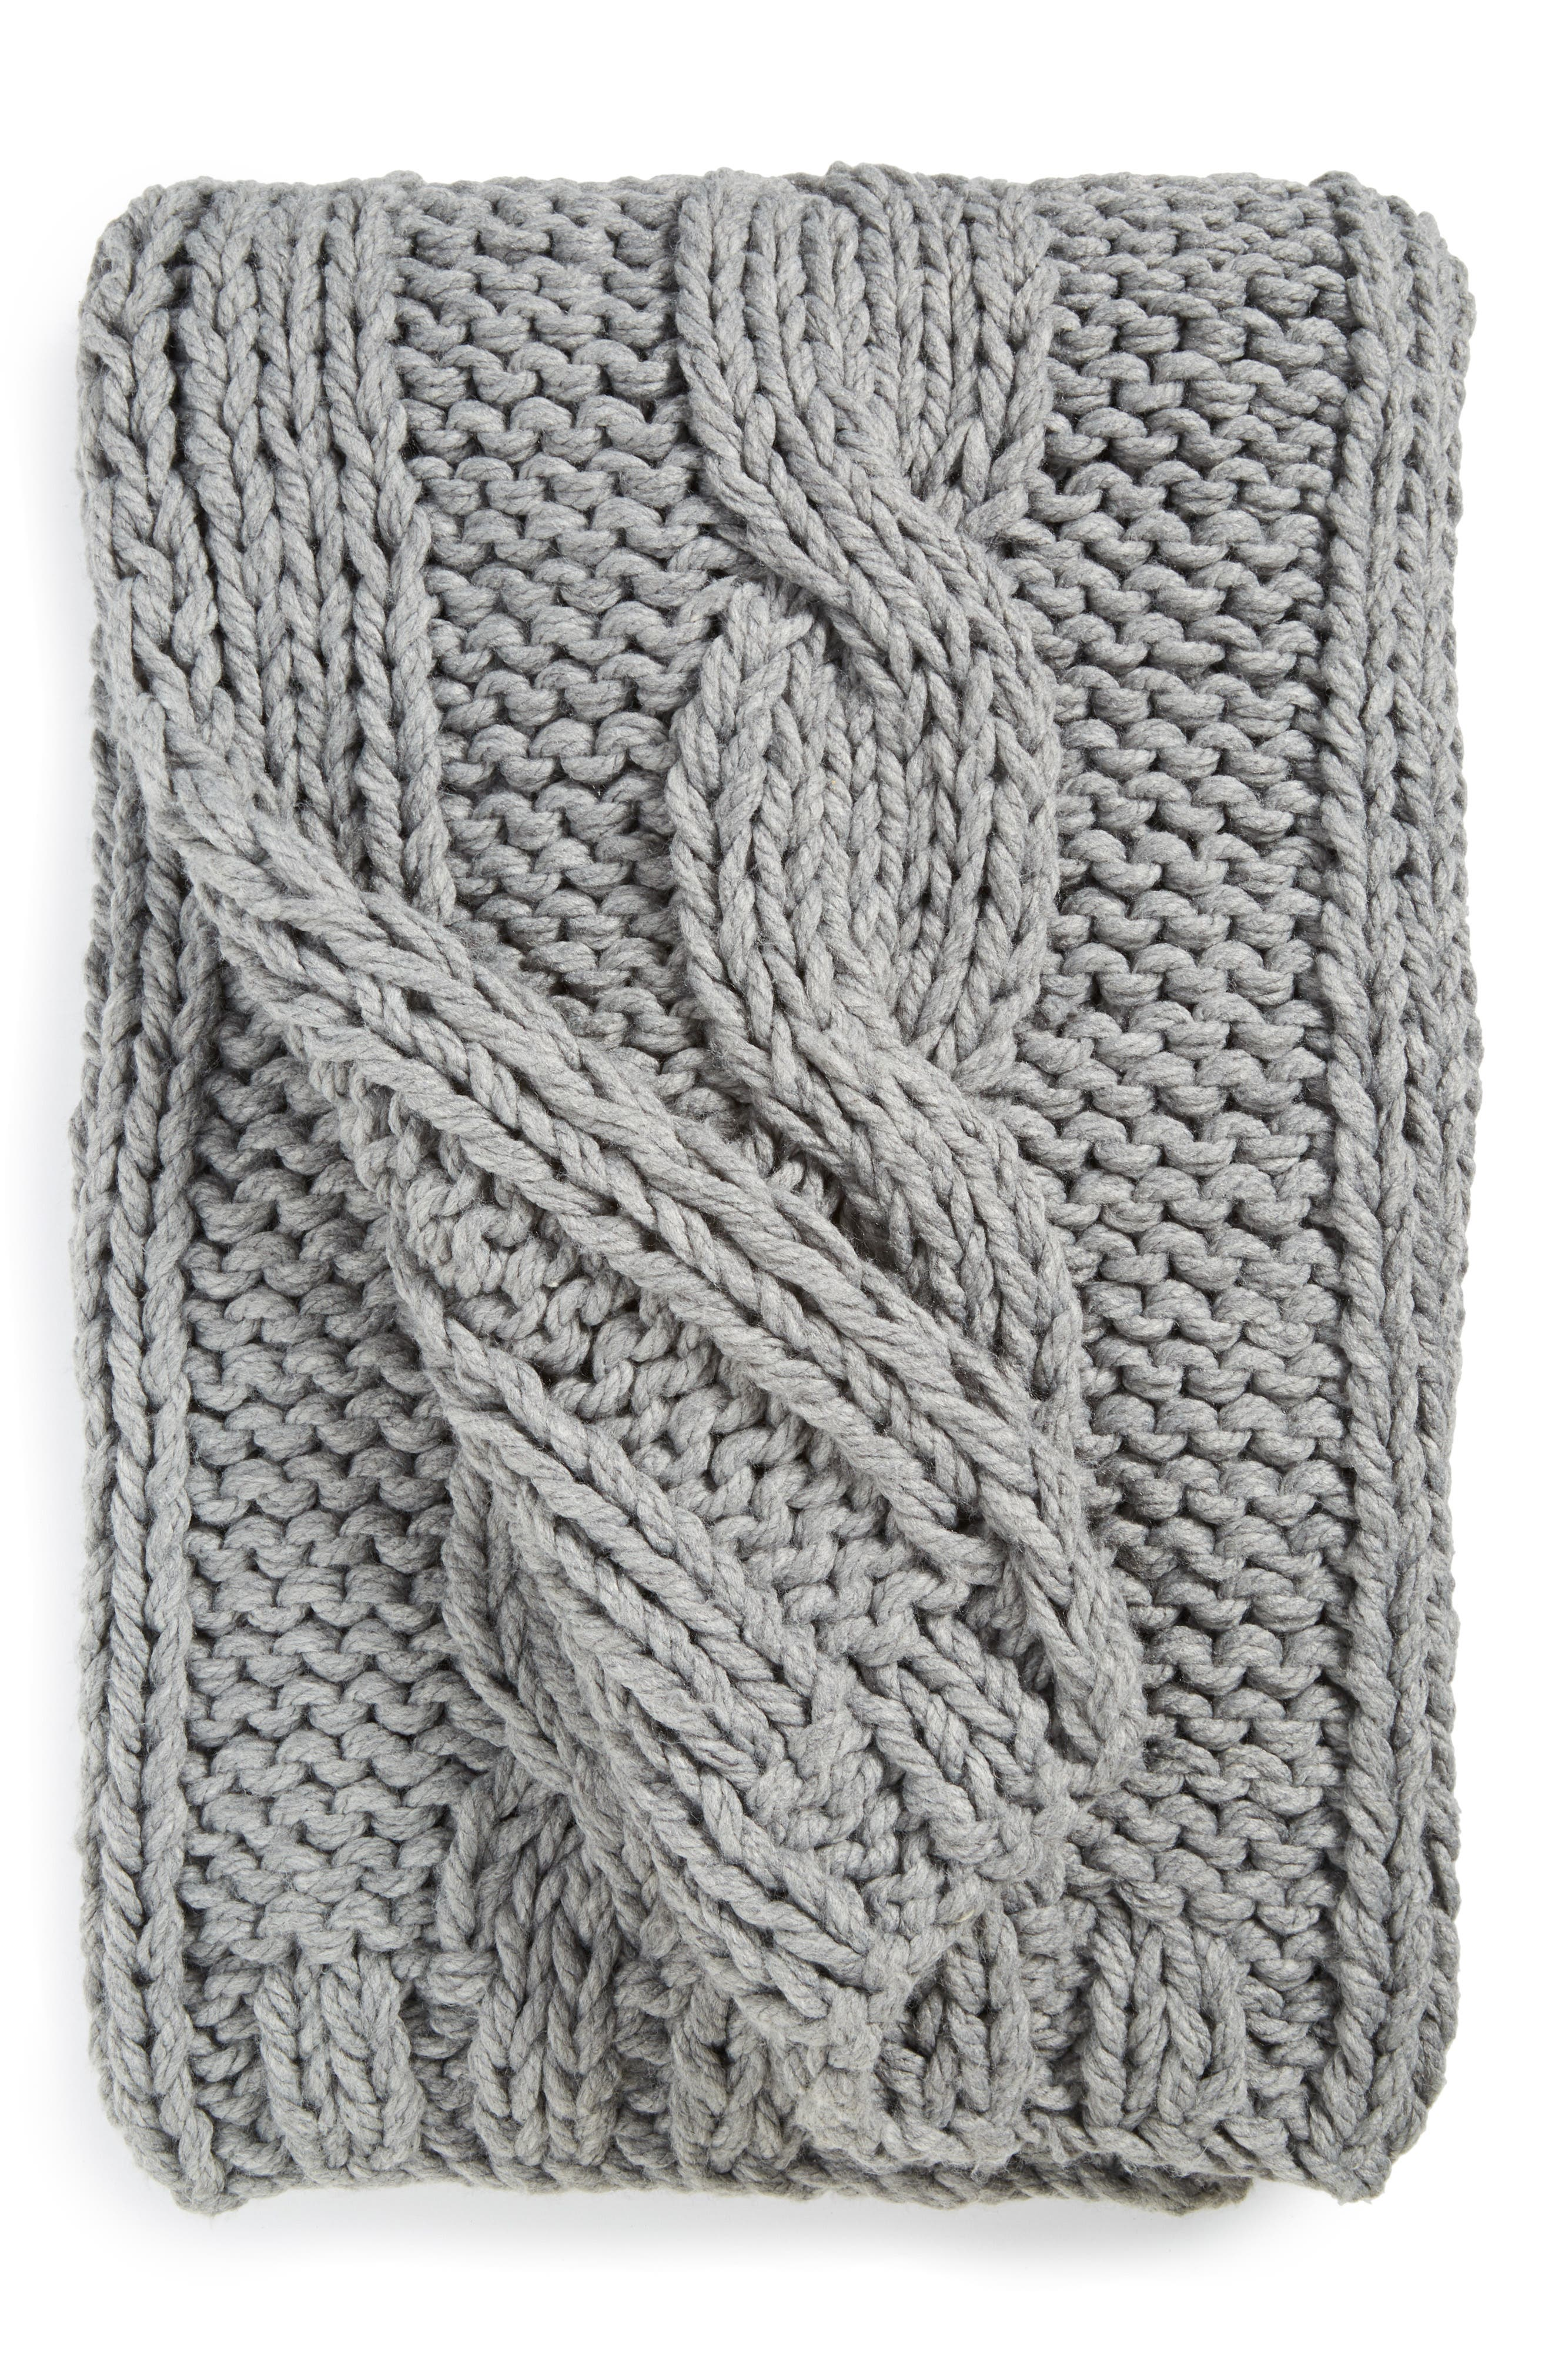 NORDSTROM AT HOME, Grand Cable Throw, Main thumbnail 1, color, 020